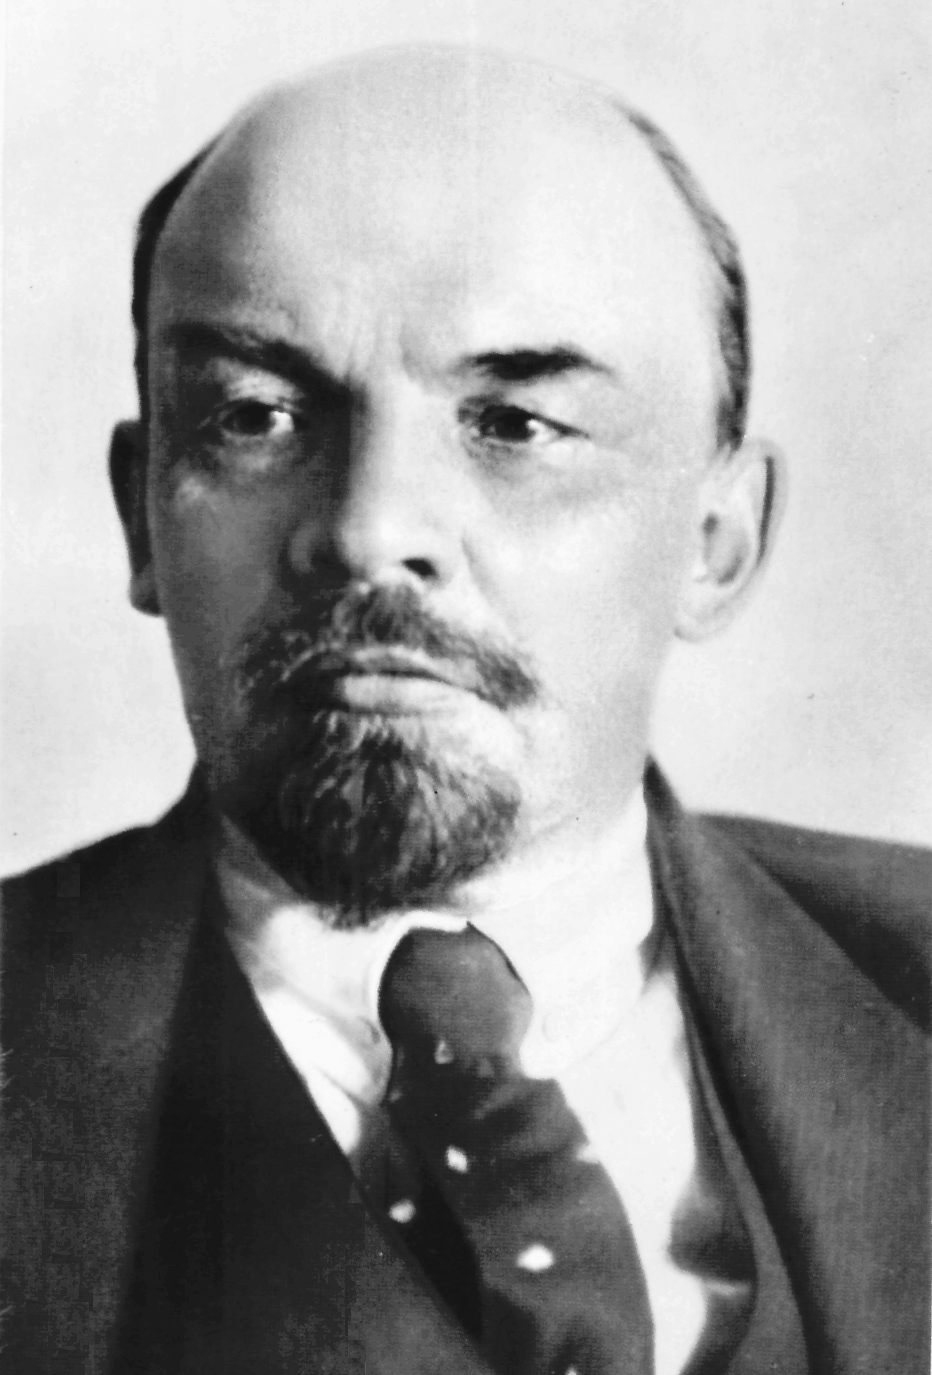 vladimir lenin peasants indigenous people lumpenproletarians vladimir lenin peasants indigenous people lumpenproletarians revolutionaries and third worldists vladimir lenin